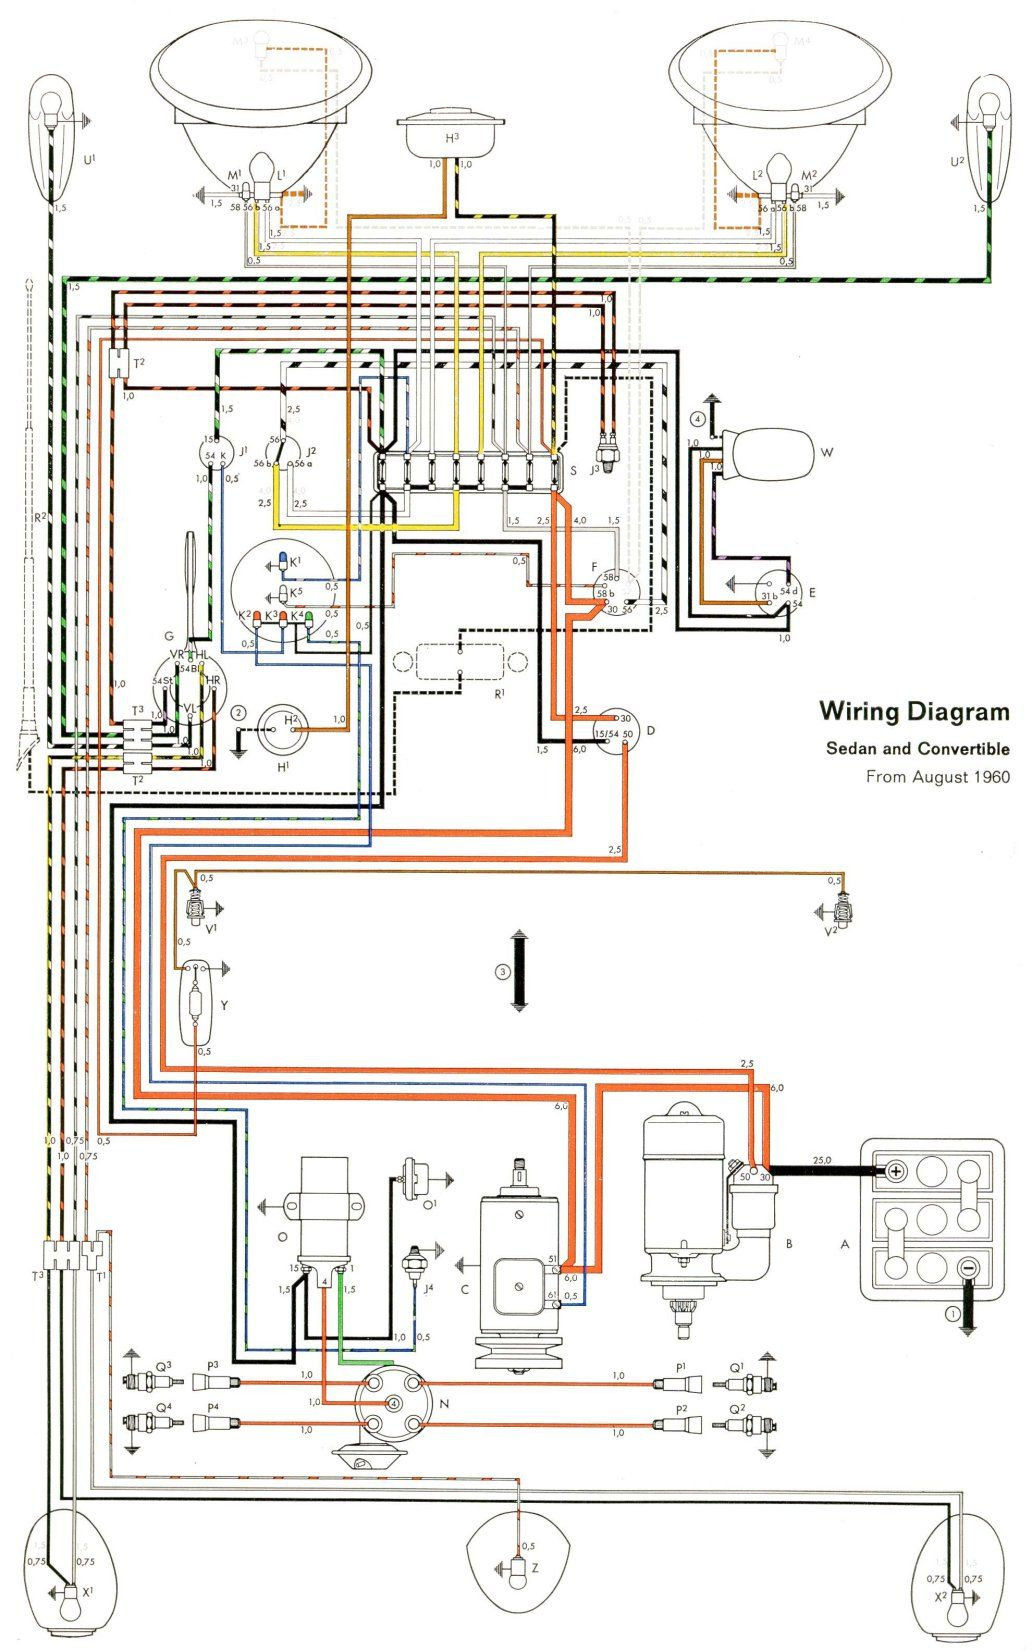 1961 Beetle Wiring Diagram Vw Beetles Vw Bug Vw Dune Buggy